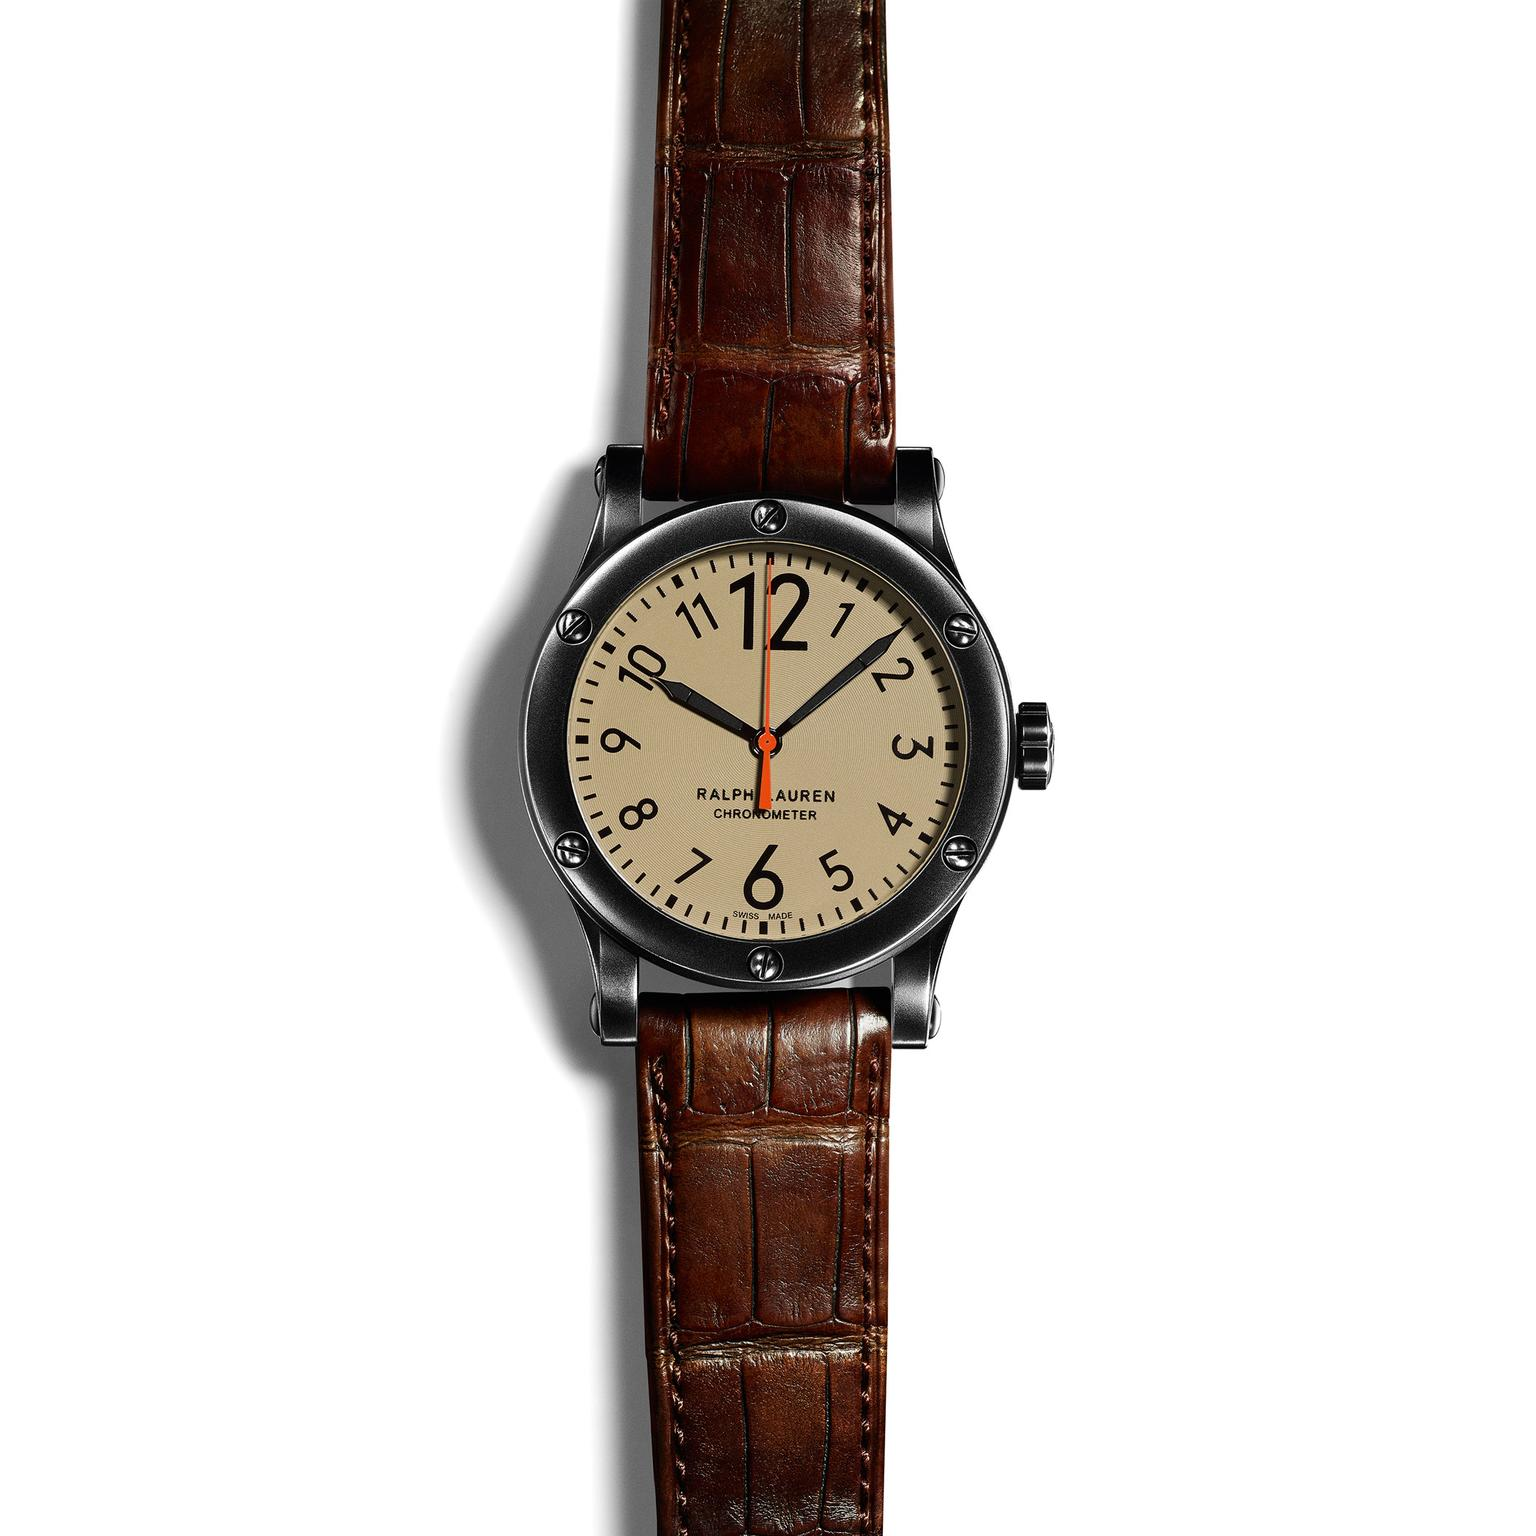 Ralph Lauren safari 39mm watch with khaki dial_zoom